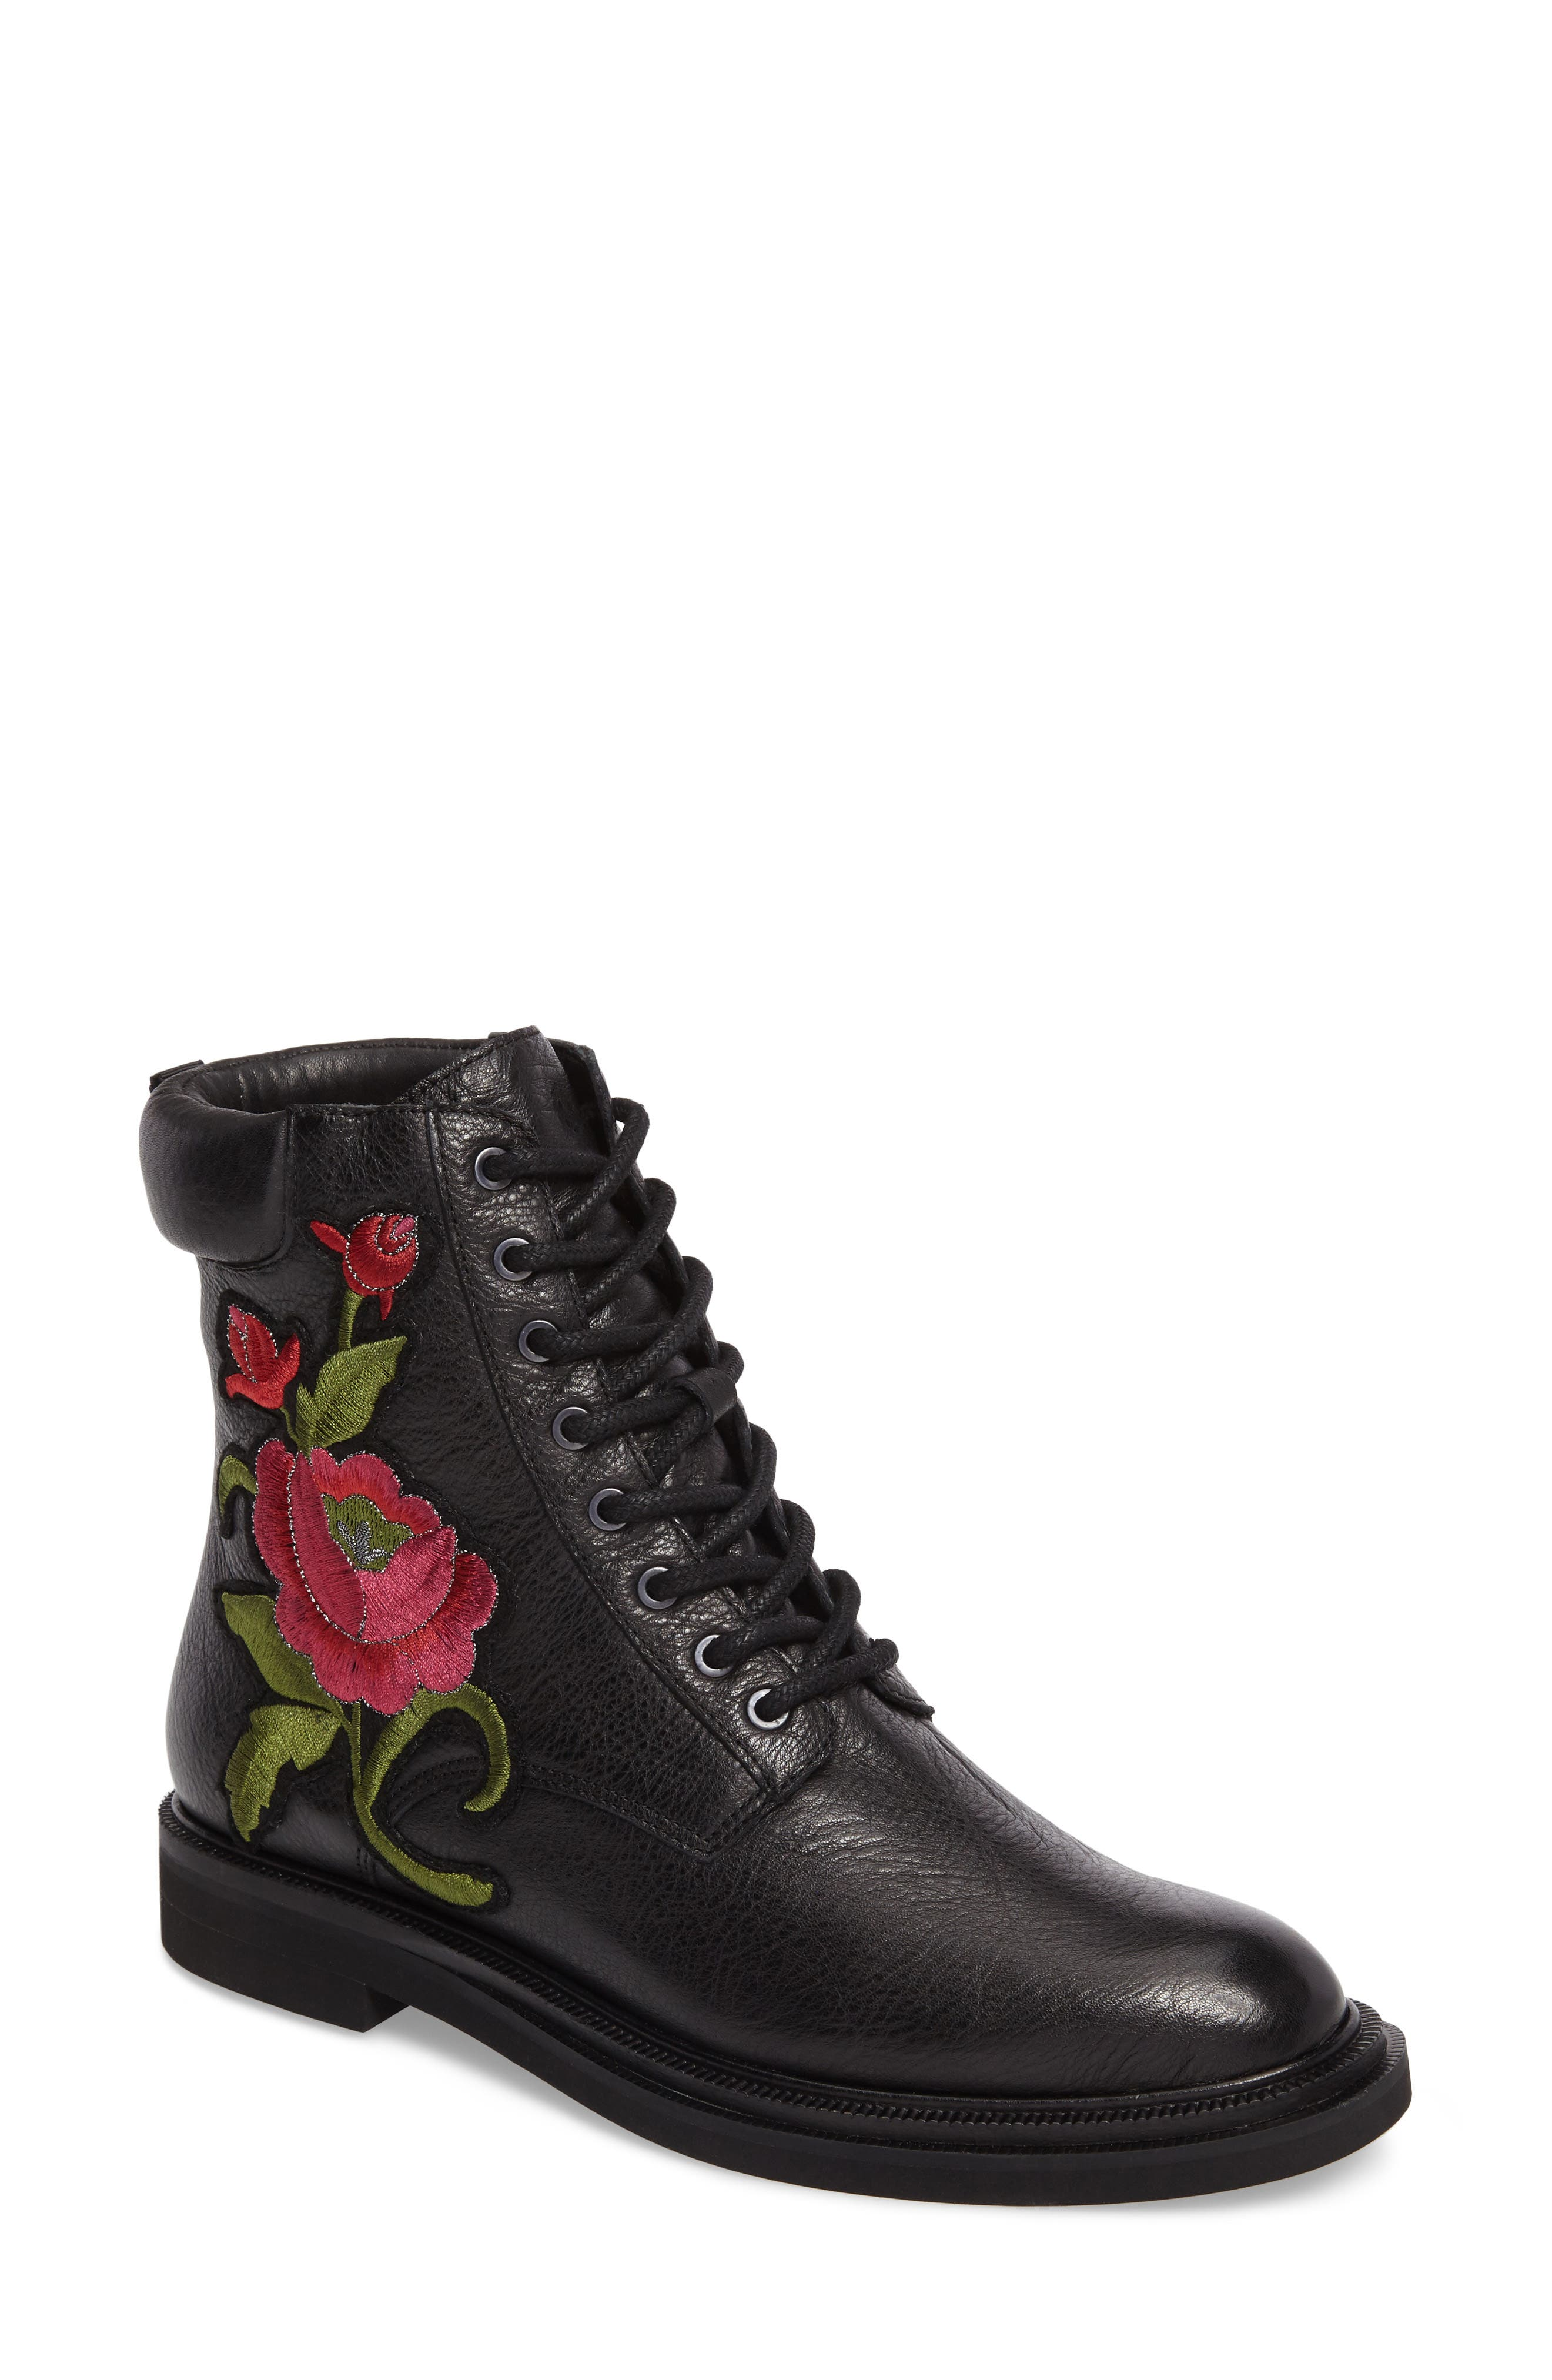 Alternate Image 1 Selected - Kenneth Cole New York Ashton 2 Embroidered Boot (Women)